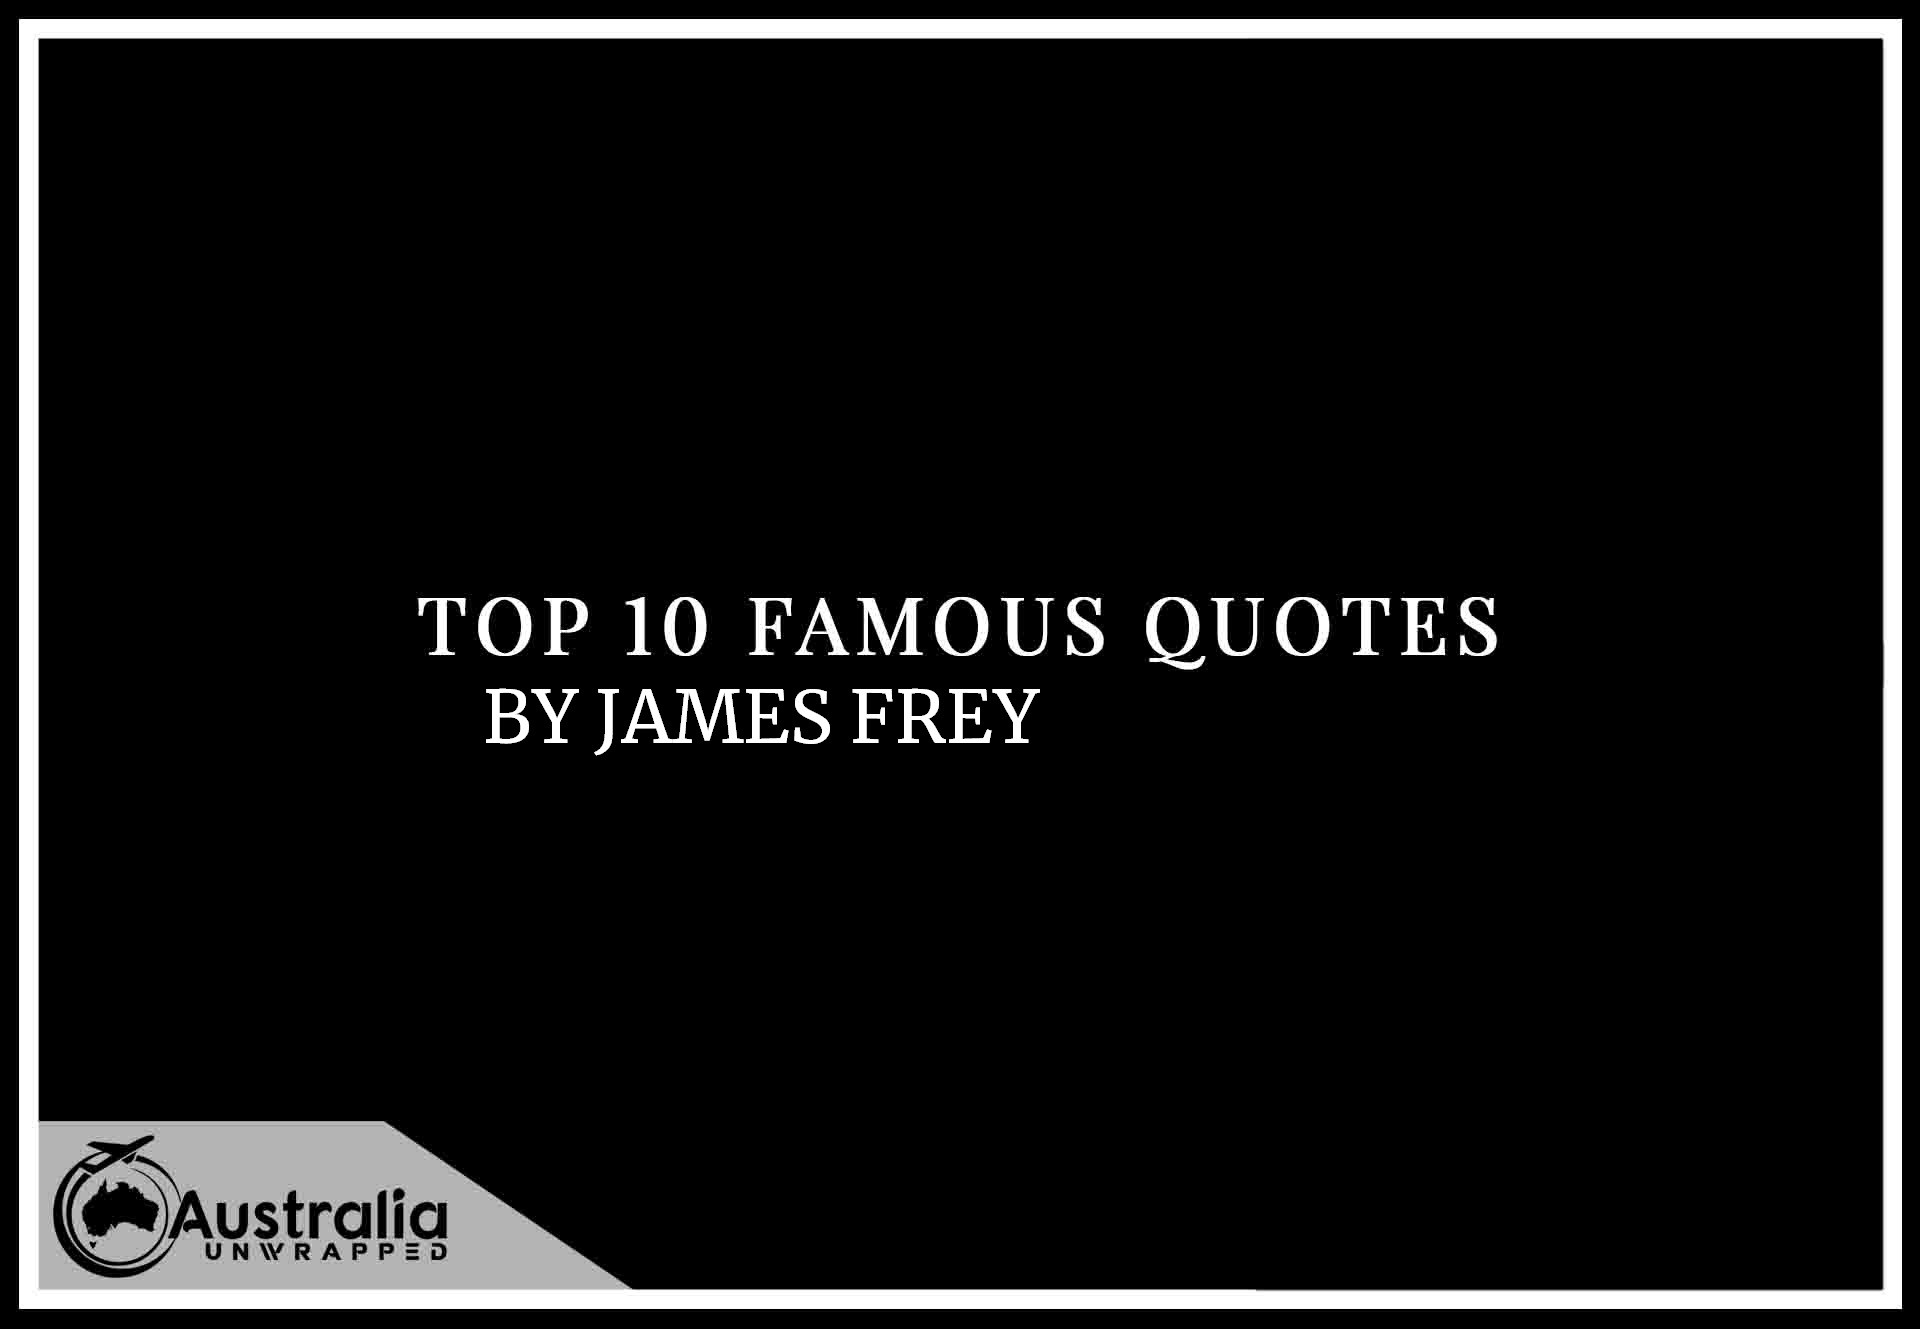 Top 10 Famous Quotes by Author James Frey